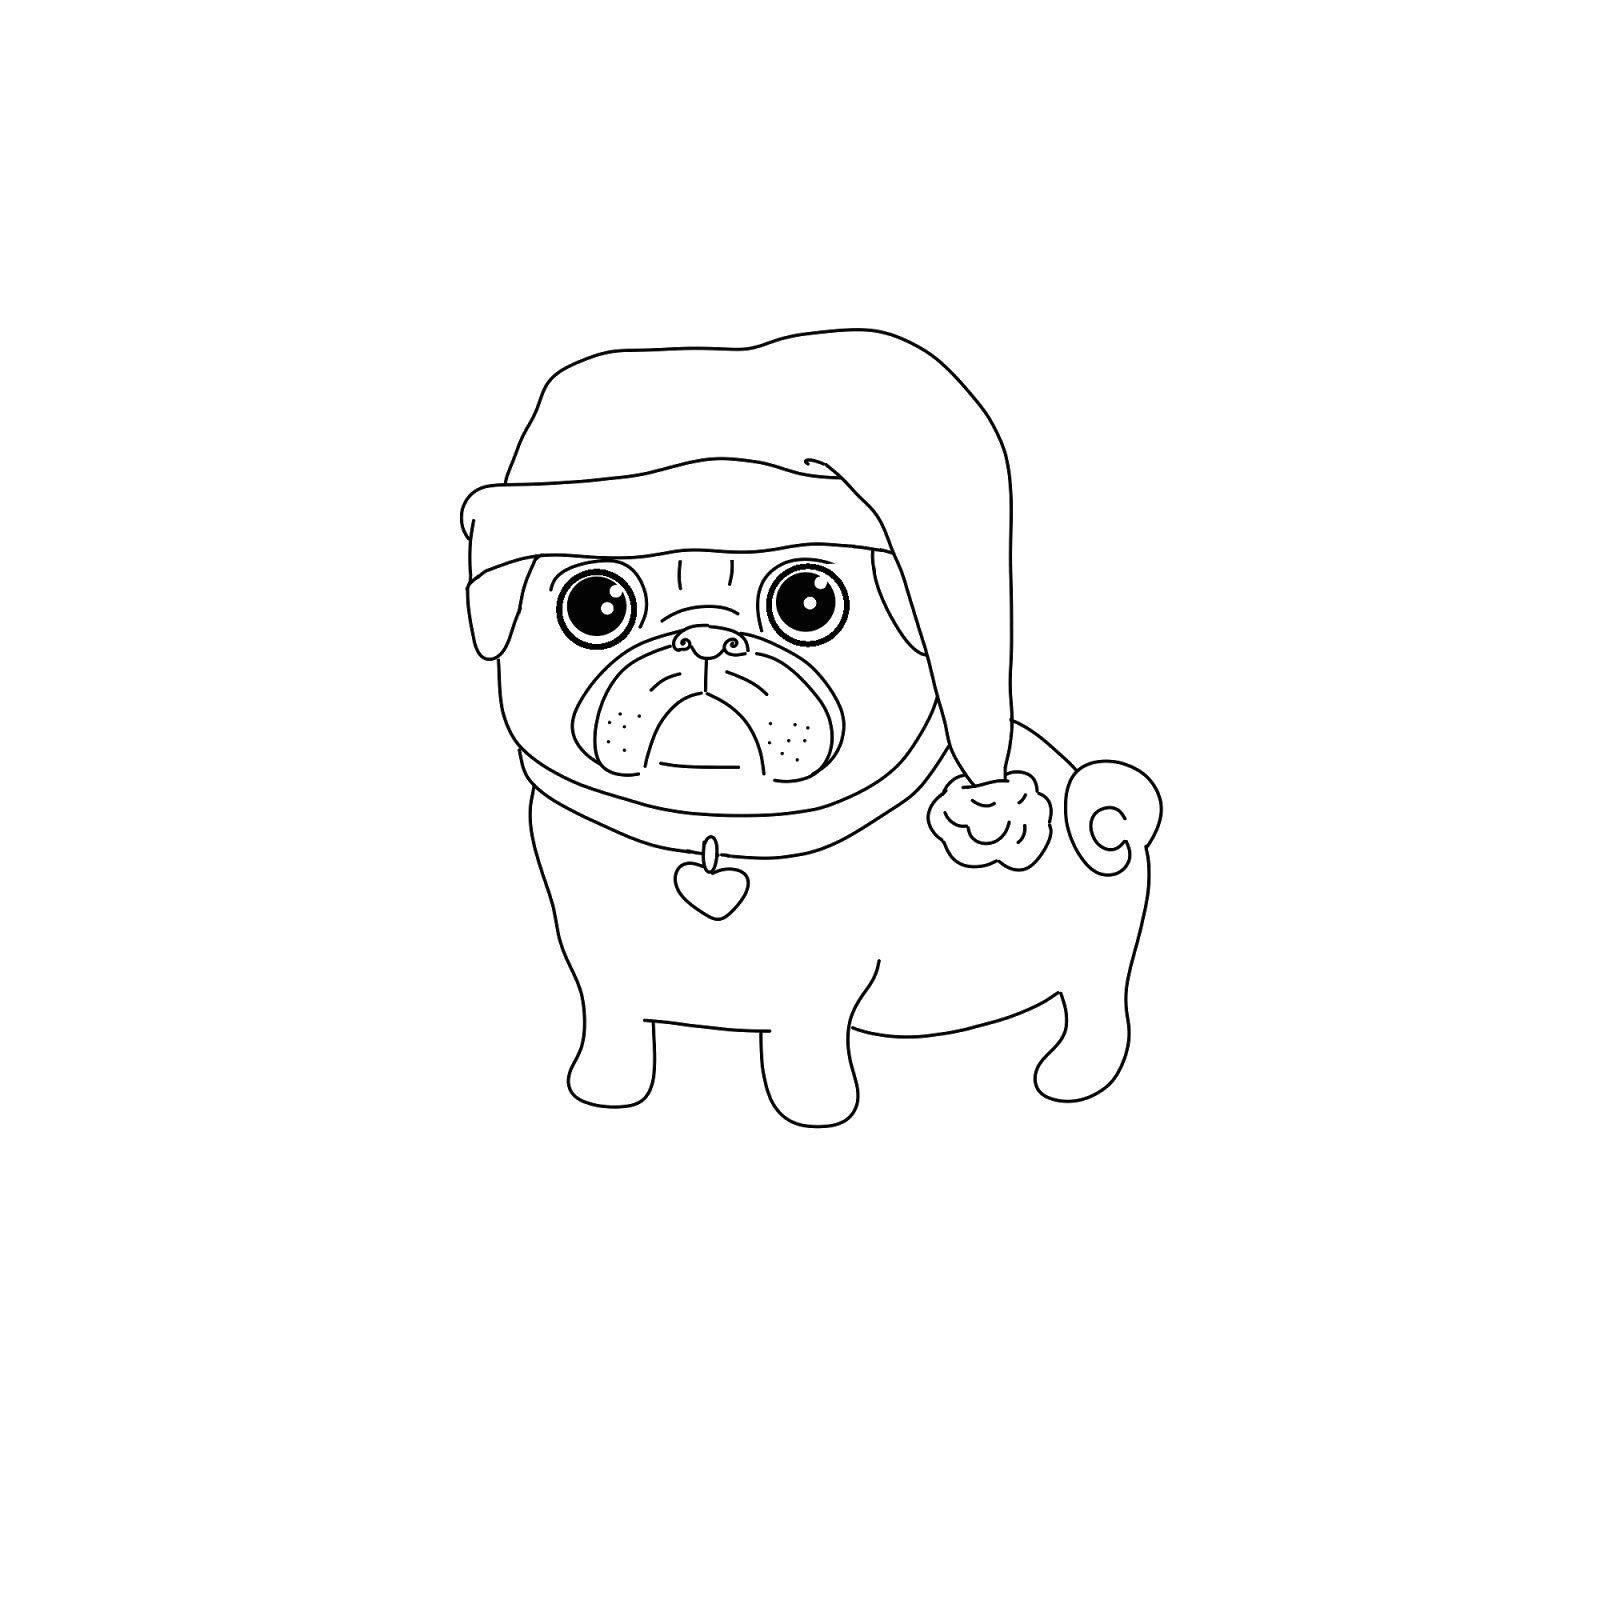 Pug Puppy Coloring Pages Pug Coloring Pages Best Coloring Pages For Kids